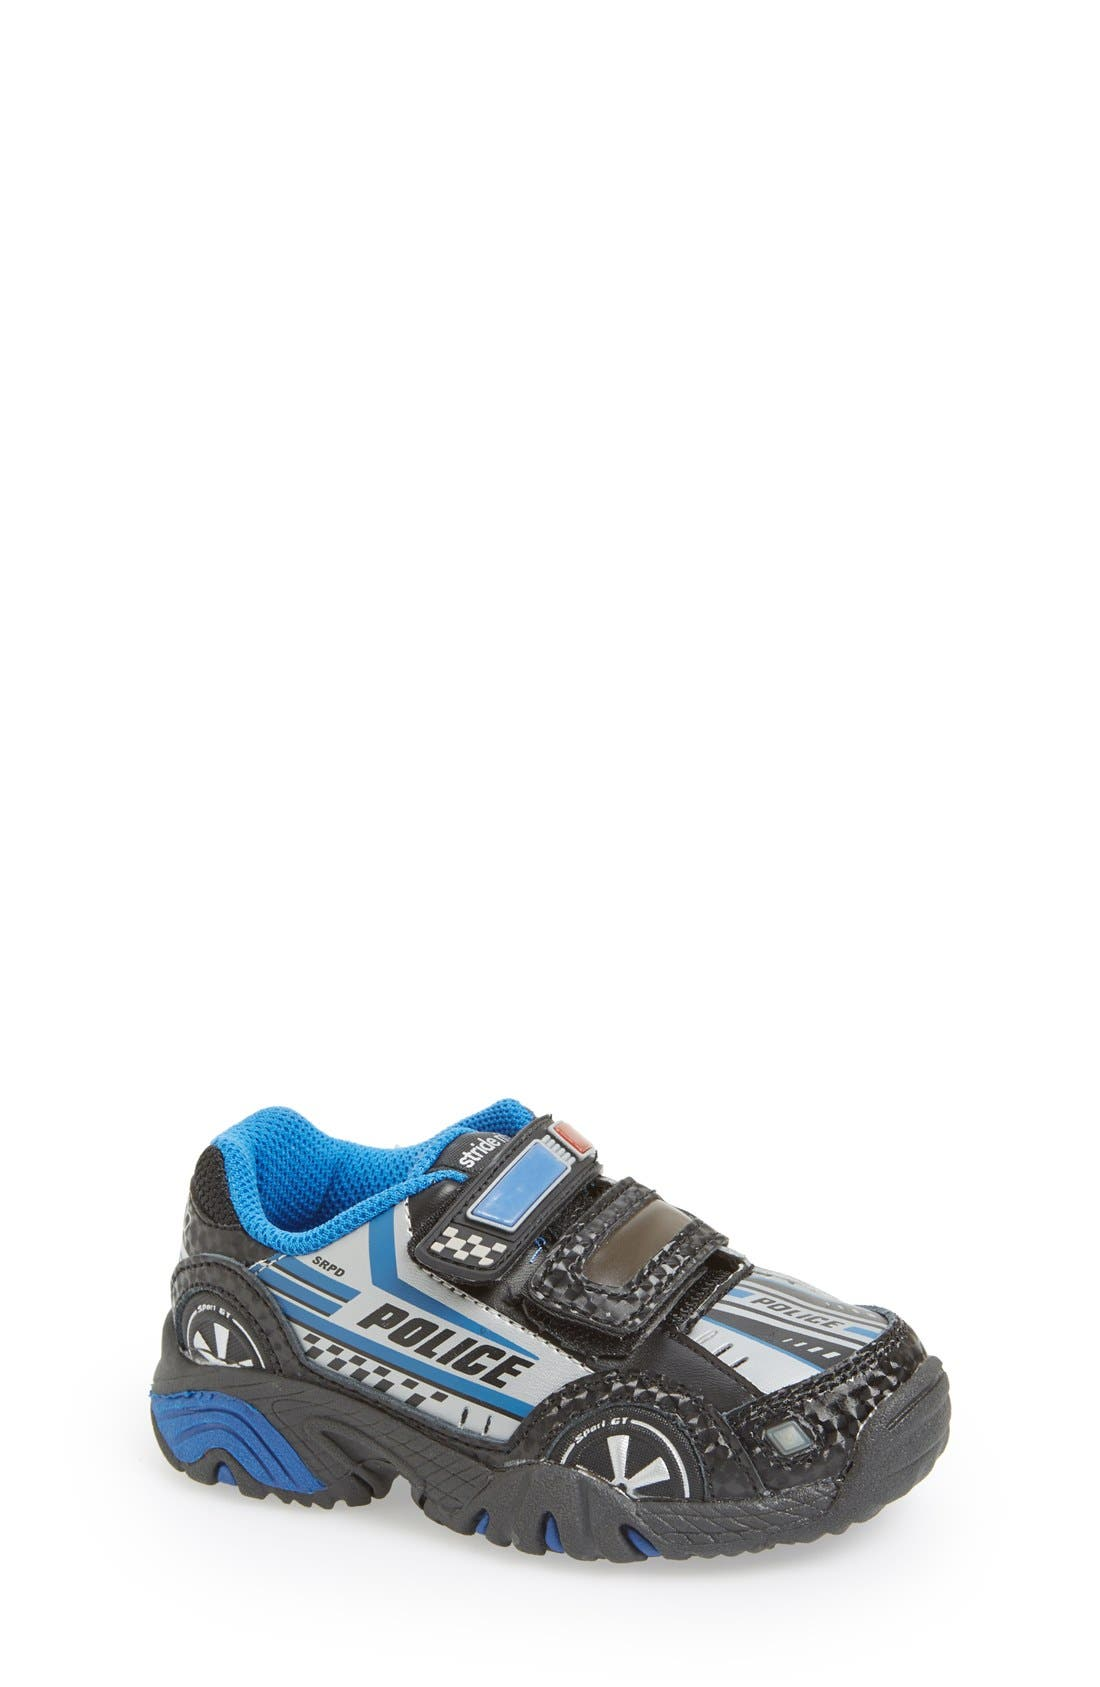 'Vroomz - Police Car' Light-Up Sneaker,                             Main thumbnail 1, color,                             001